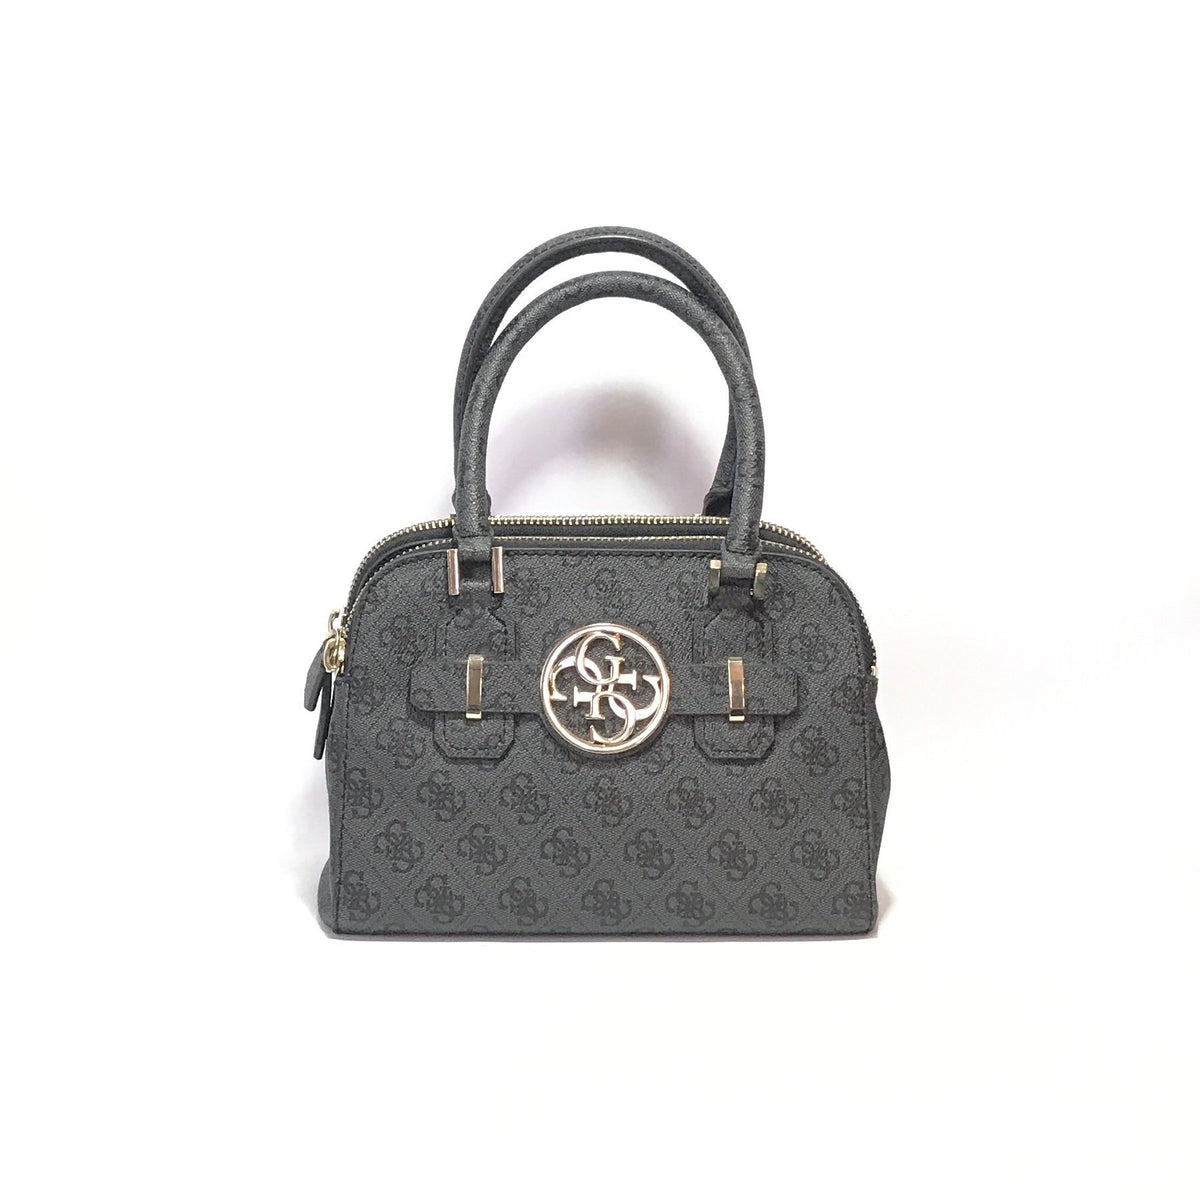 Guess Navy Monogram Coated Canvas Tote Like New Secret Stash